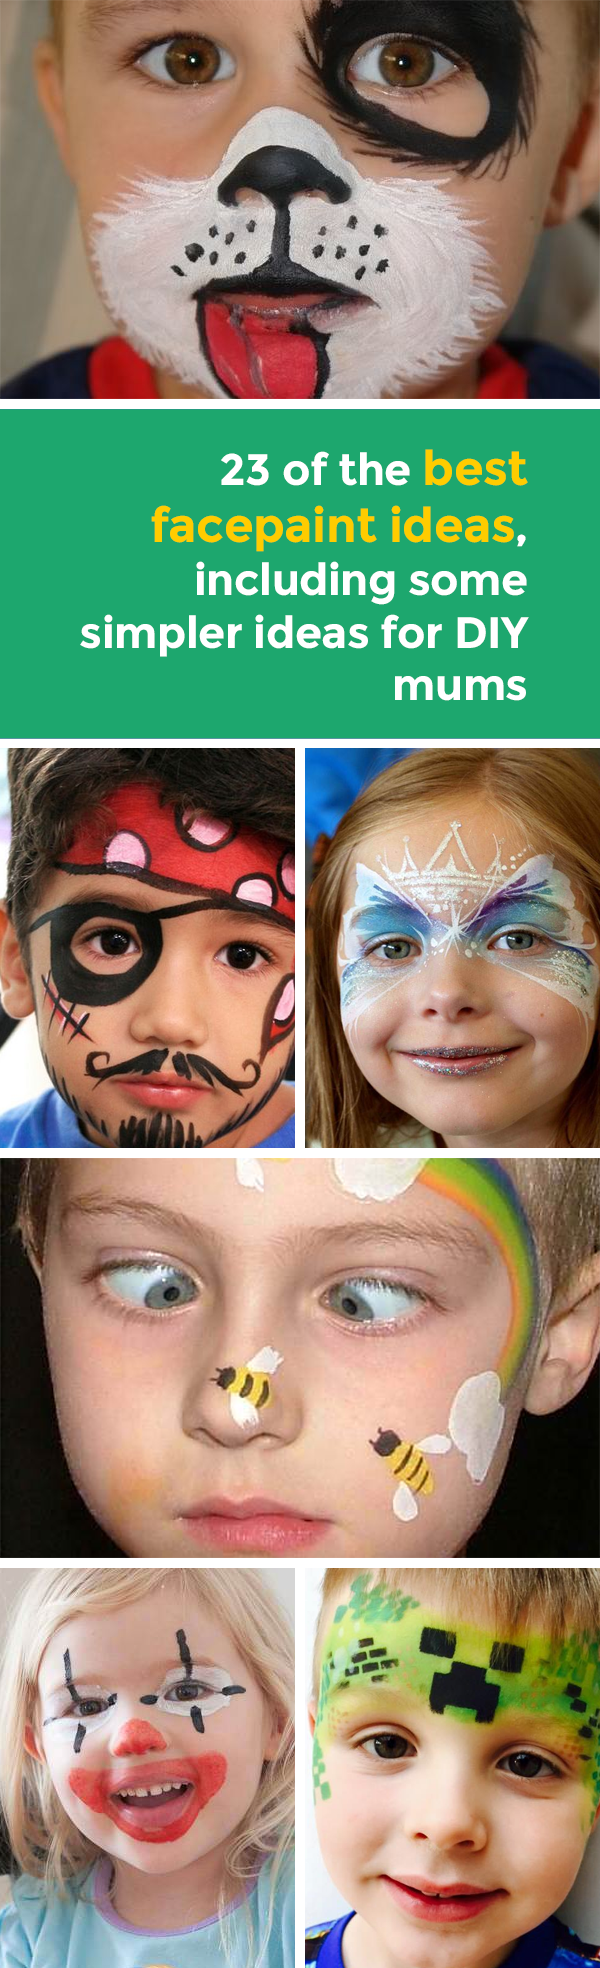 24 of the best facepaint ideas including some simpler ideas for diy 24 of the best facepaint ideas including some simpler ideas for diy mums solutioingenieria Gallery